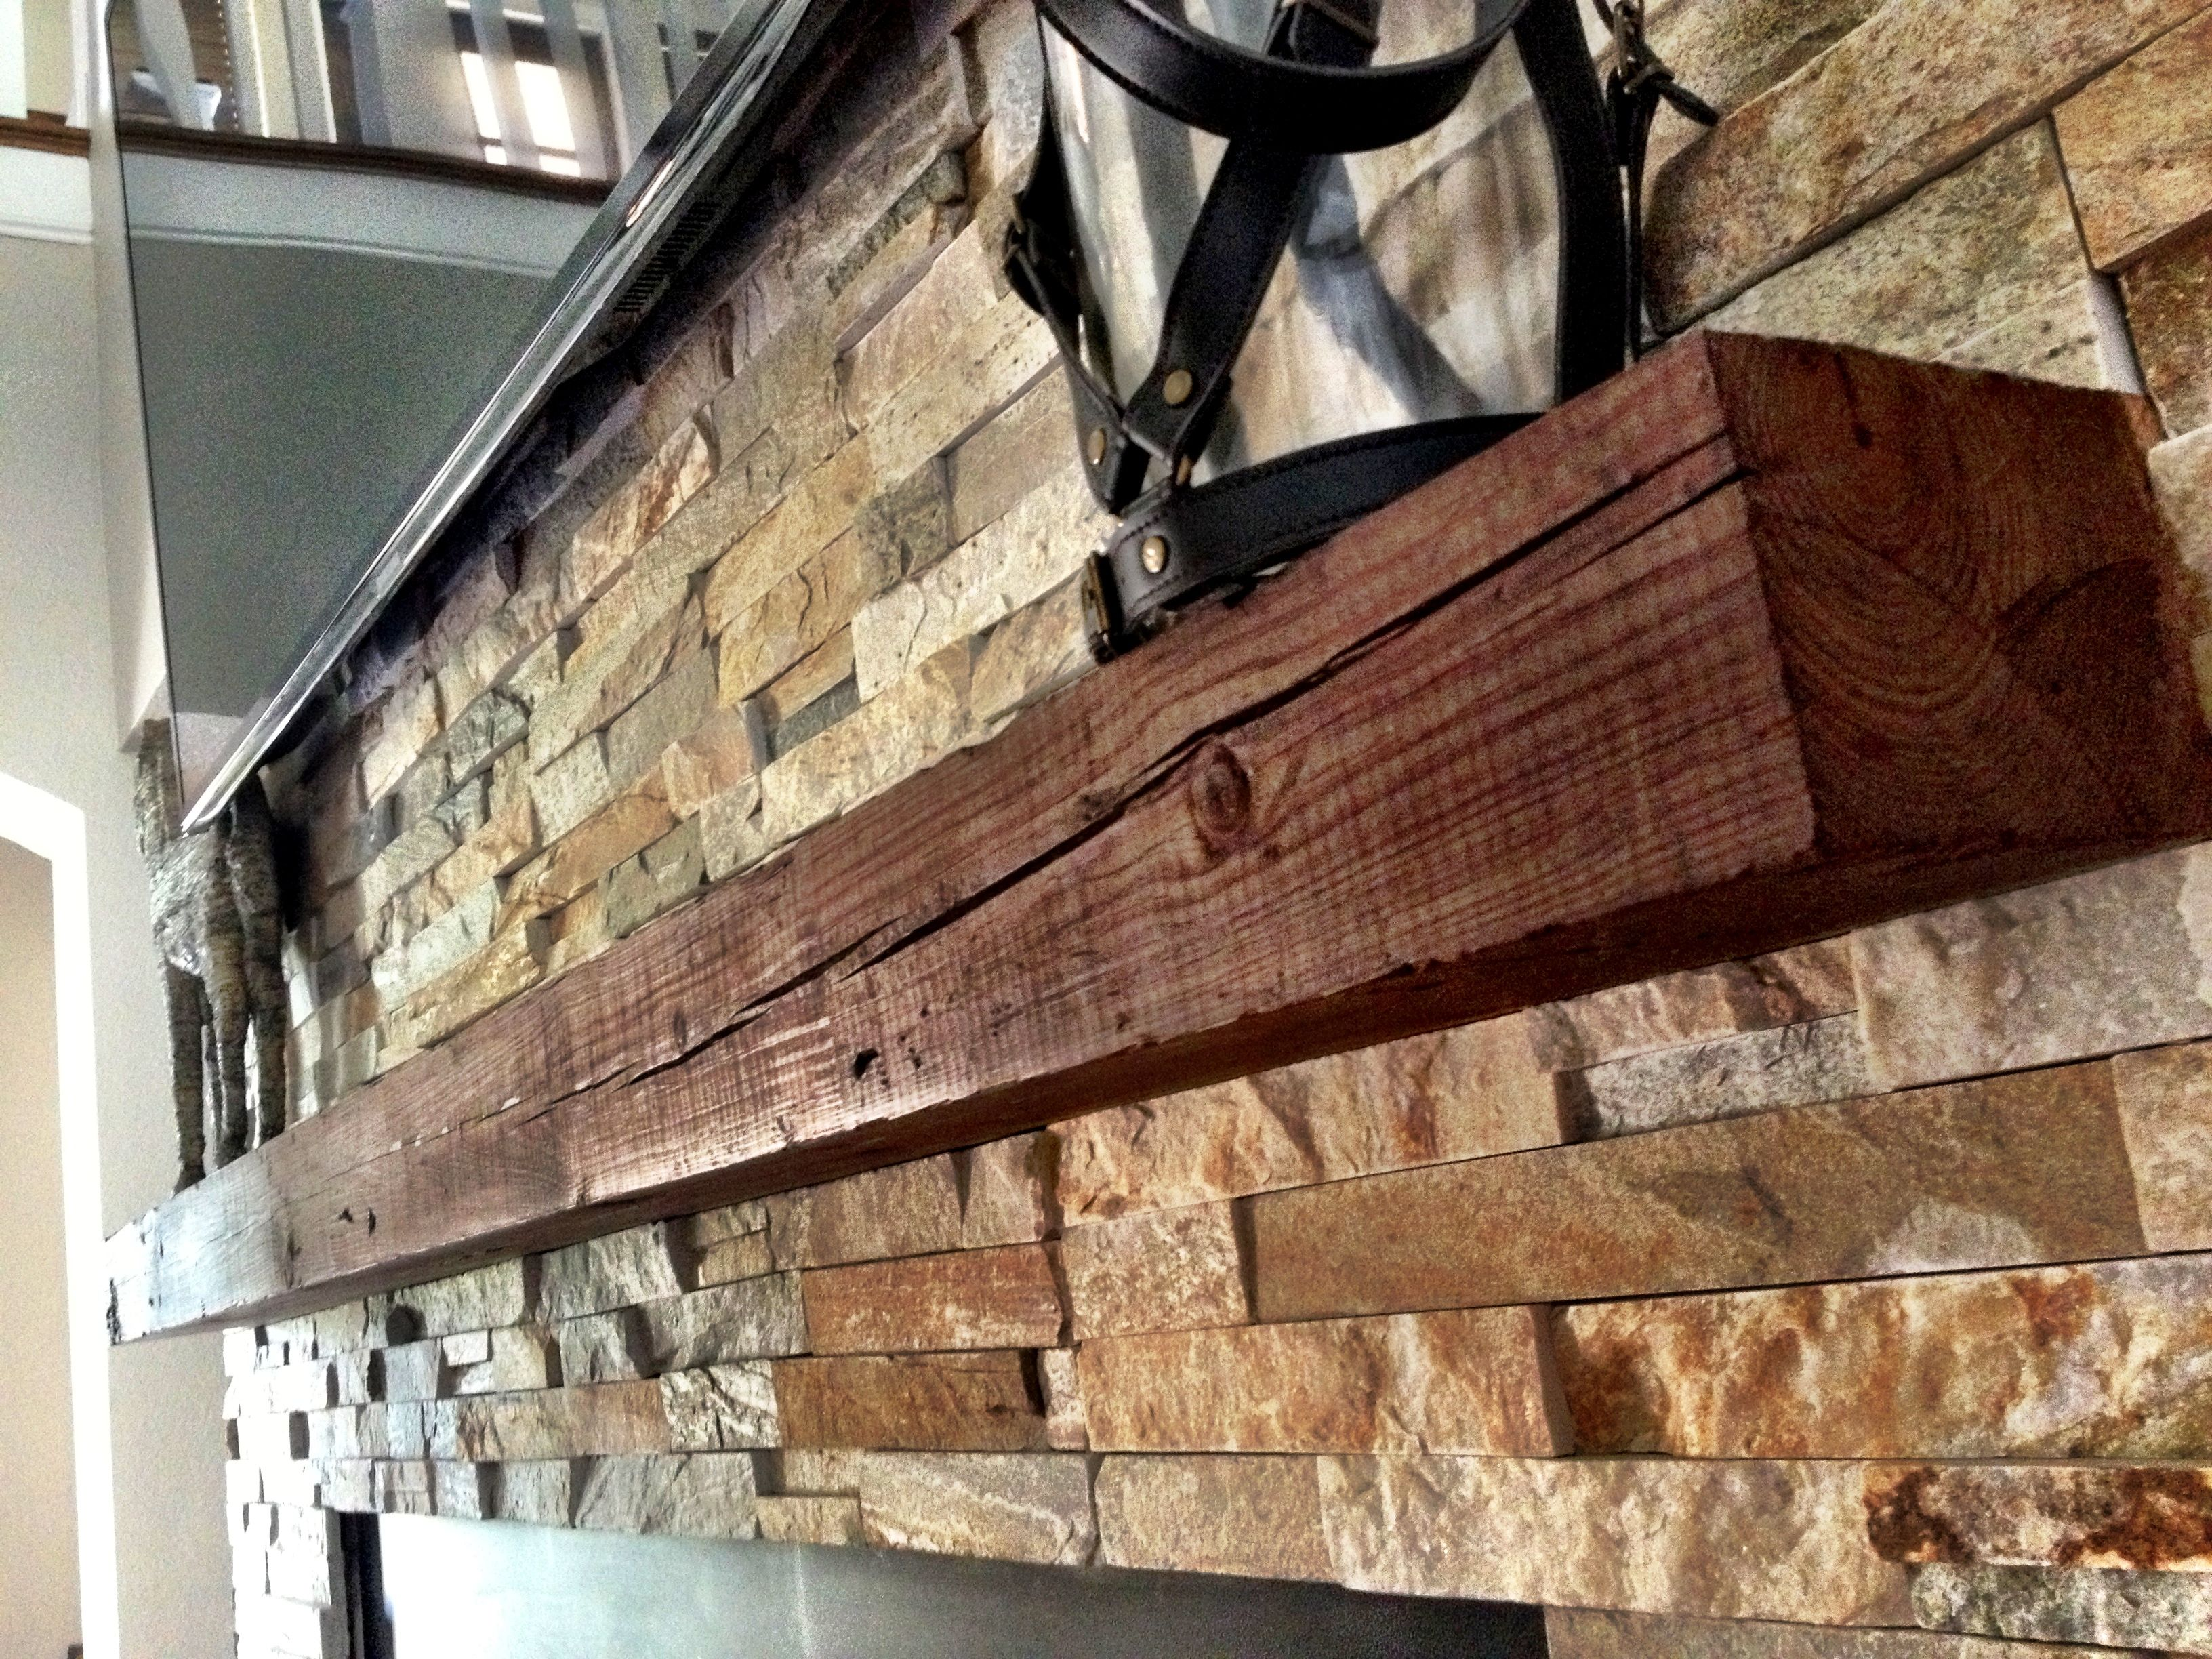 Mantle From Reclaimed Wood Beam Inspiration For My Montana Cabin